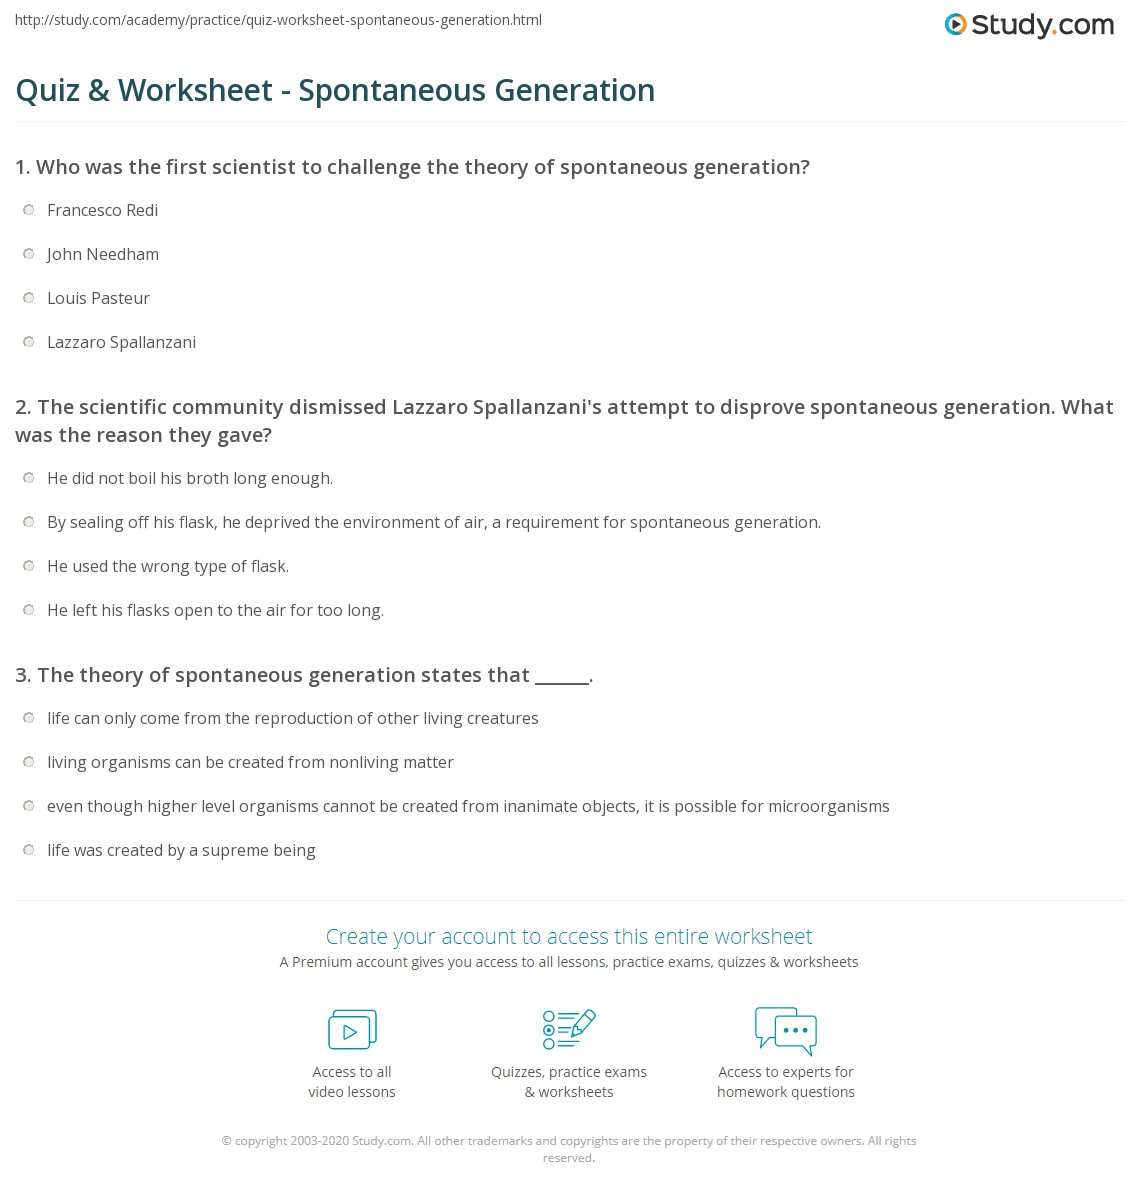 Aldiablosus  Winsome Quiz Amp Worksheet  Spontaneous Generation  Studycom With Exciting Print Spontaneous Generation Definition Theory Amp Examples Worksheet With Amazing Free Printable Worksheets For Th Grade Math Also Worksheet Works Graphing Linear Equations Answers In Addition How To Fill Out Form I Worksheet And Active Voice Vs Passive Voice Worksheet As Well As Civil War Worksheets For Kids Additionally Synonym Worksheets For Th Grade From Studycom With Aldiablosus  Exciting Quiz Amp Worksheet  Spontaneous Generation  Studycom With Amazing Print Spontaneous Generation Definition Theory Amp Examples Worksheet And Winsome Free Printable Worksheets For Th Grade Math Also Worksheet Works Graphing Linear Equations Answers In Addition How To Fill Out Form I Worksheet From Studycom